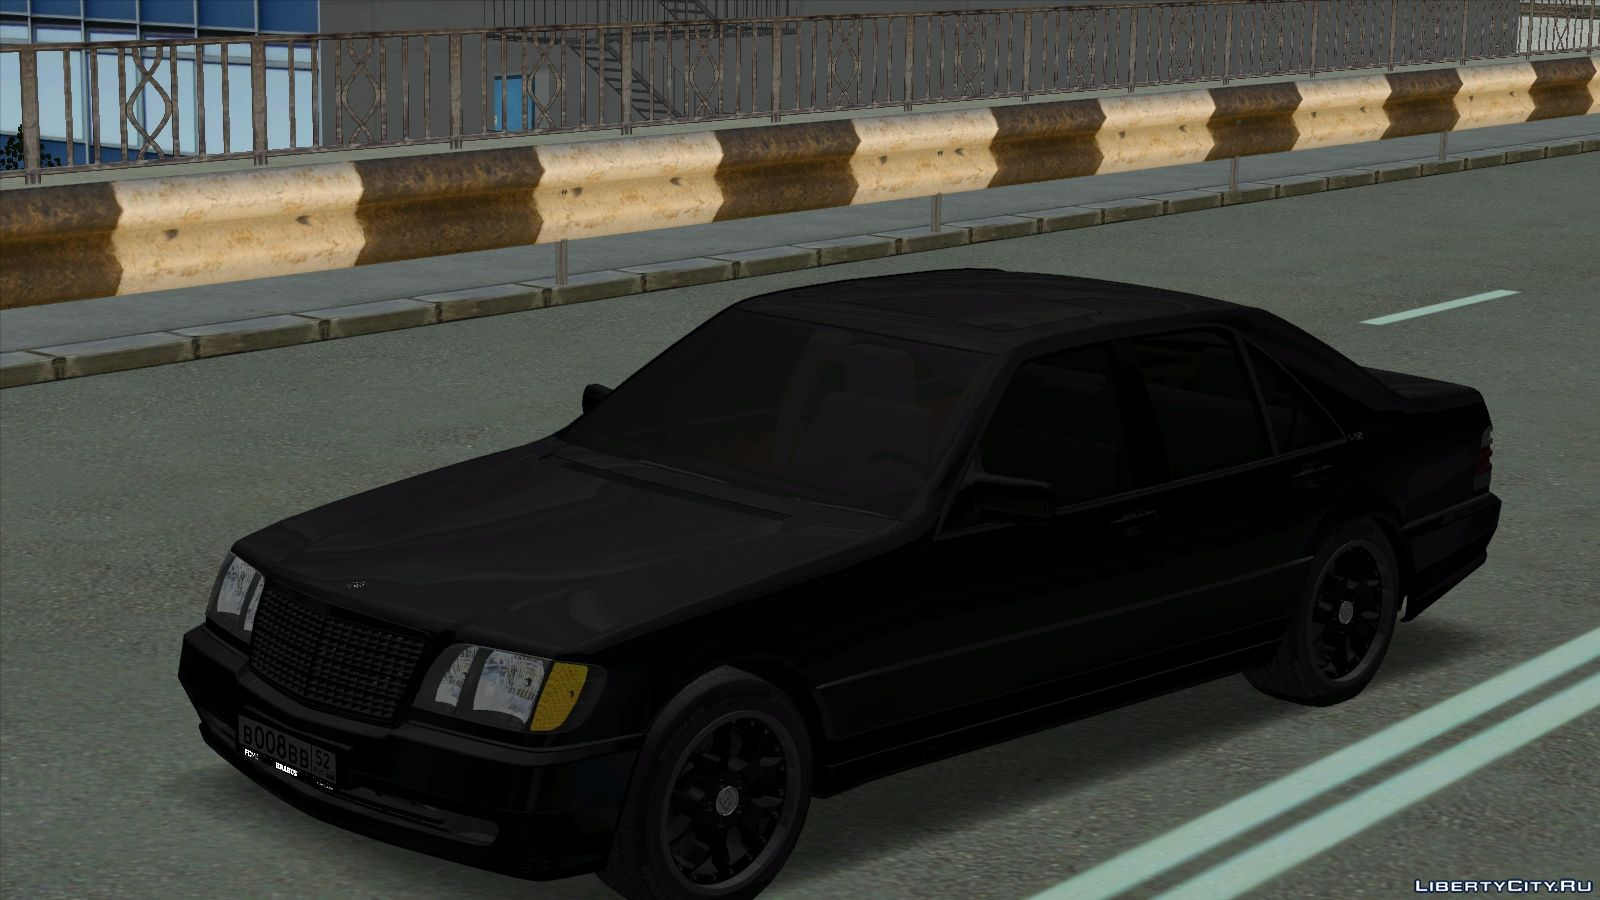 Black Gelik Brabus for Android - APK Download | 900x1600